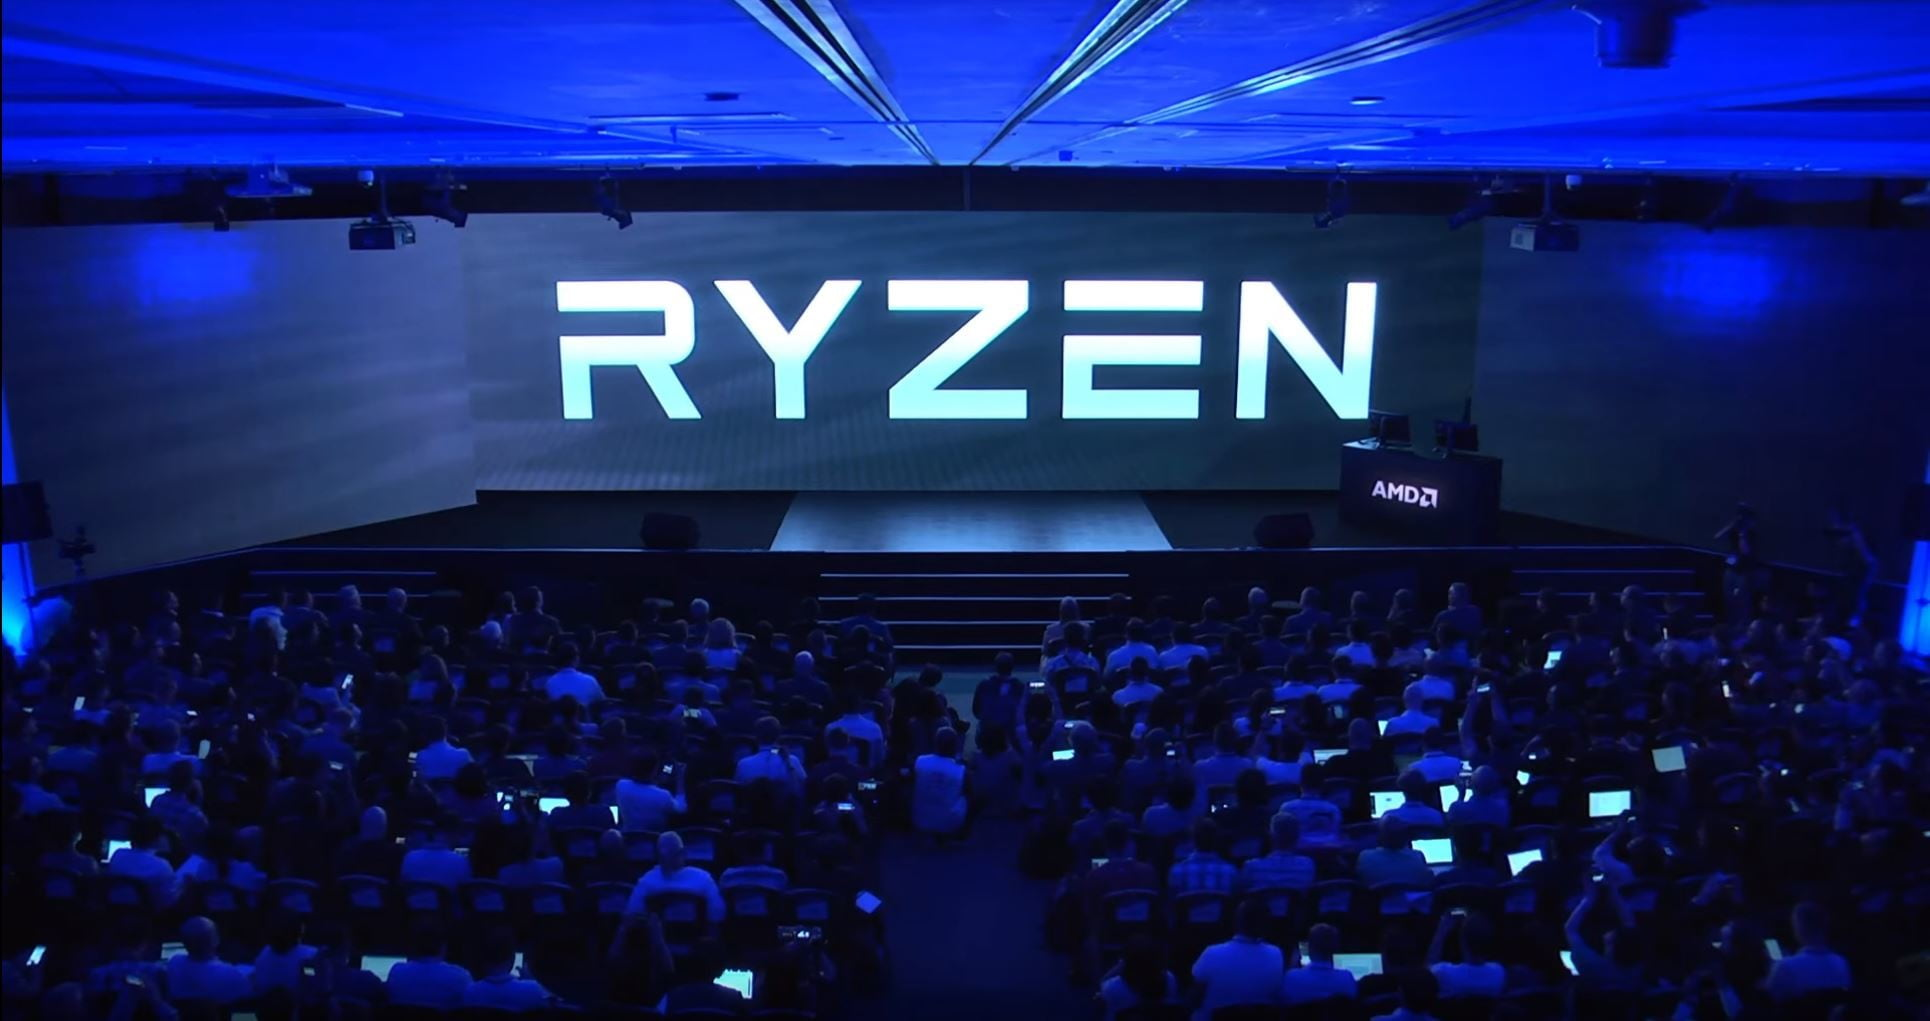 AMD Announces Ryzen 3, Which Includes a $499 12-Core Monster